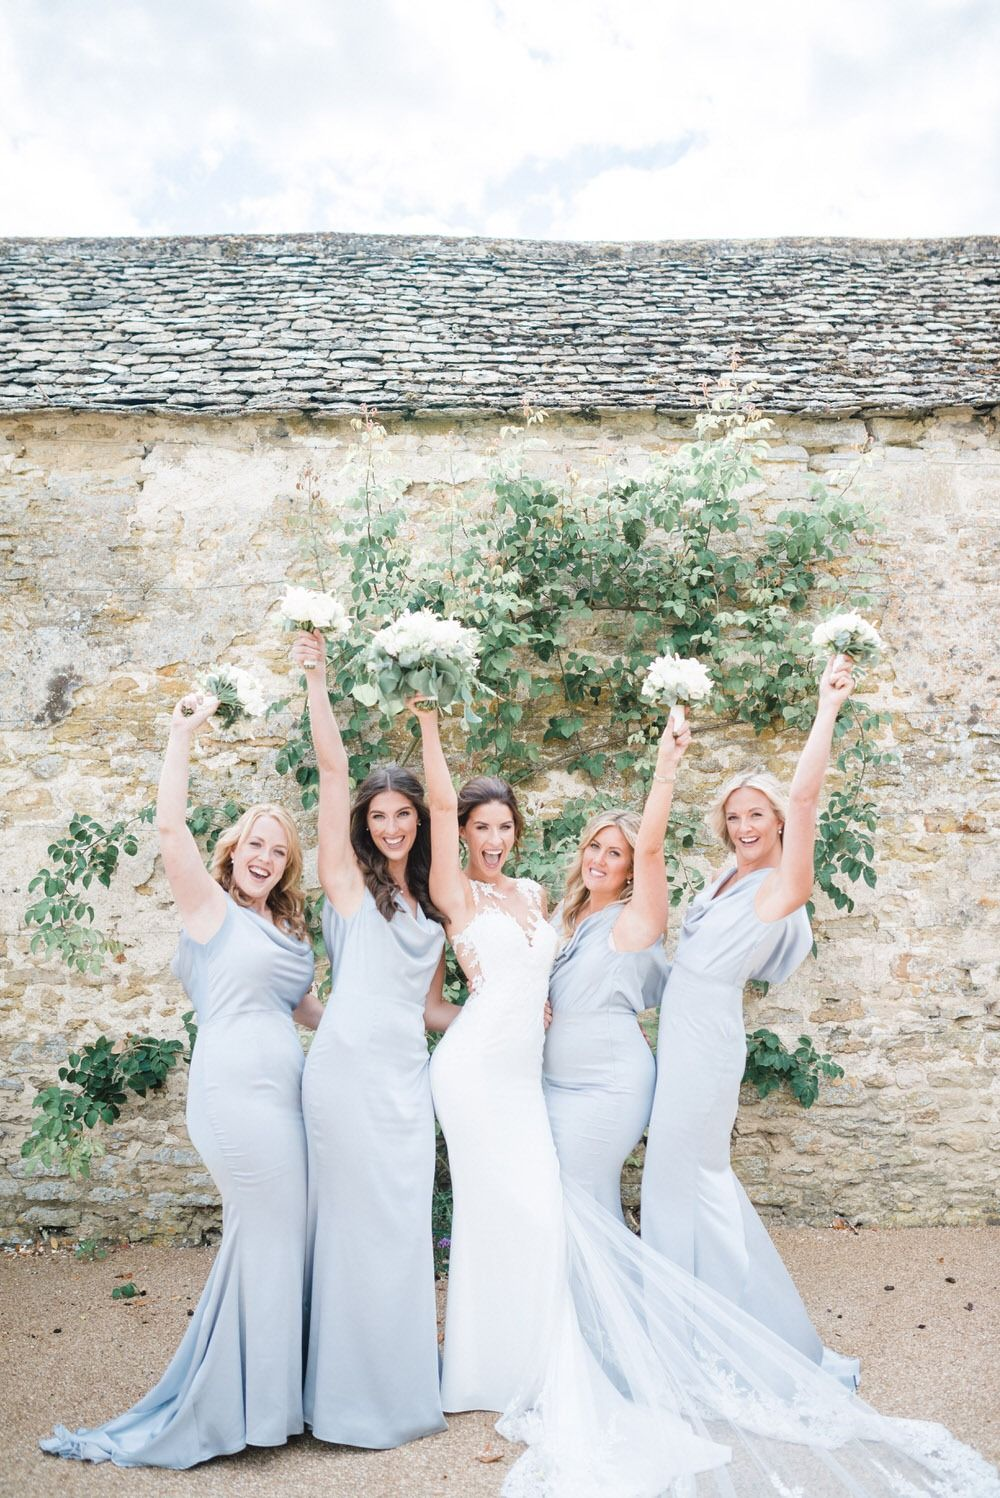 Caswell House Wedding Cotswolds Wedding Venue Photographer Bridesmaid Pictures Bride And Bridesmaid Pictures Bridesmaid Poses [ 1498 x 1000 Pixel ]